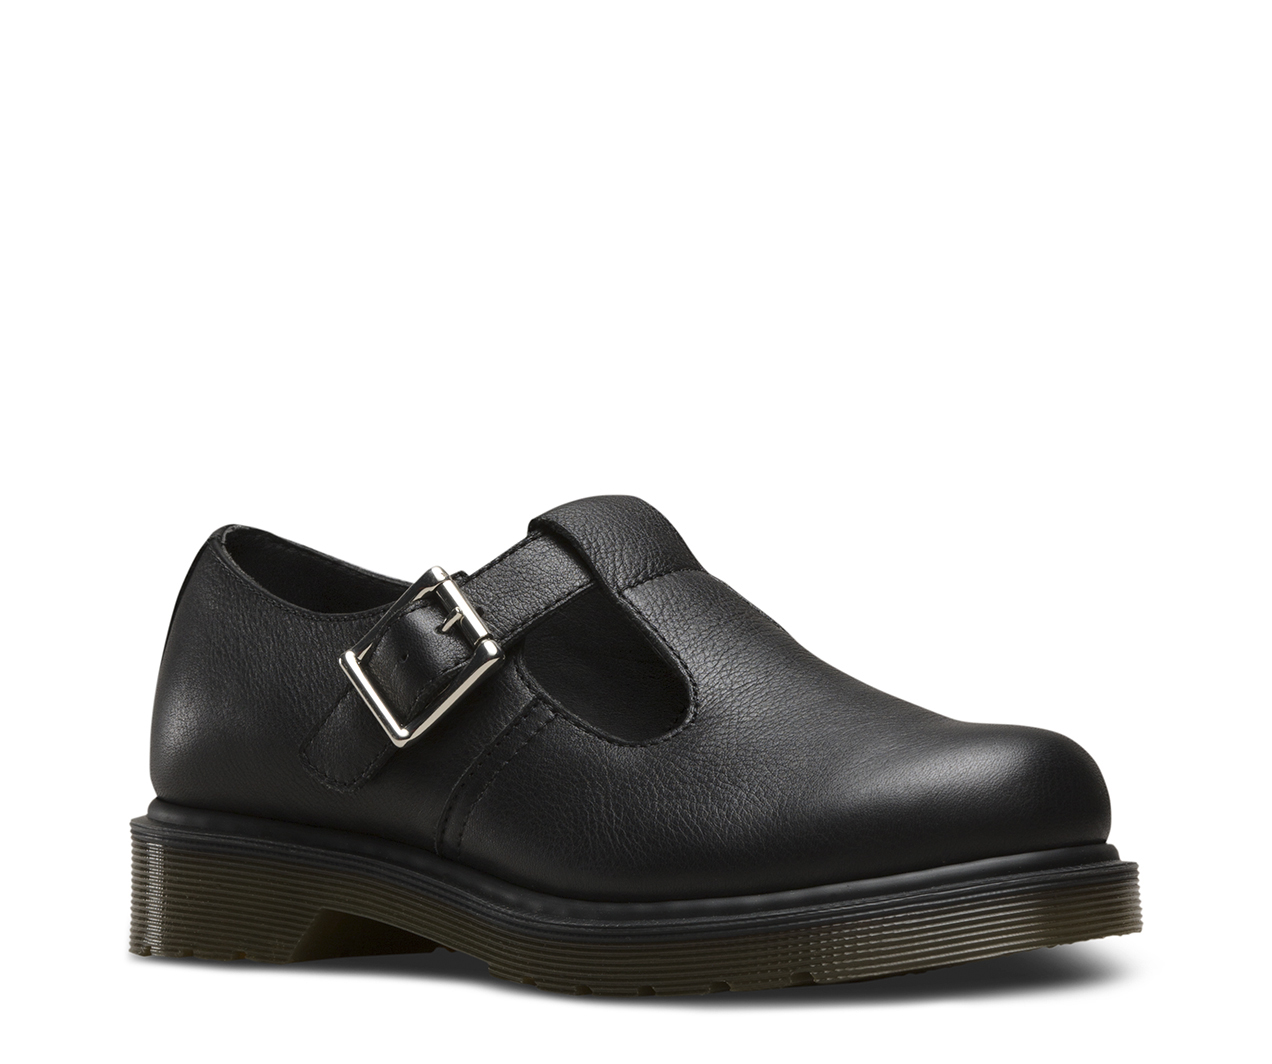 cheap pay with paypal Dr Martens Polley clearance Manchester fake sale online 2DDawH